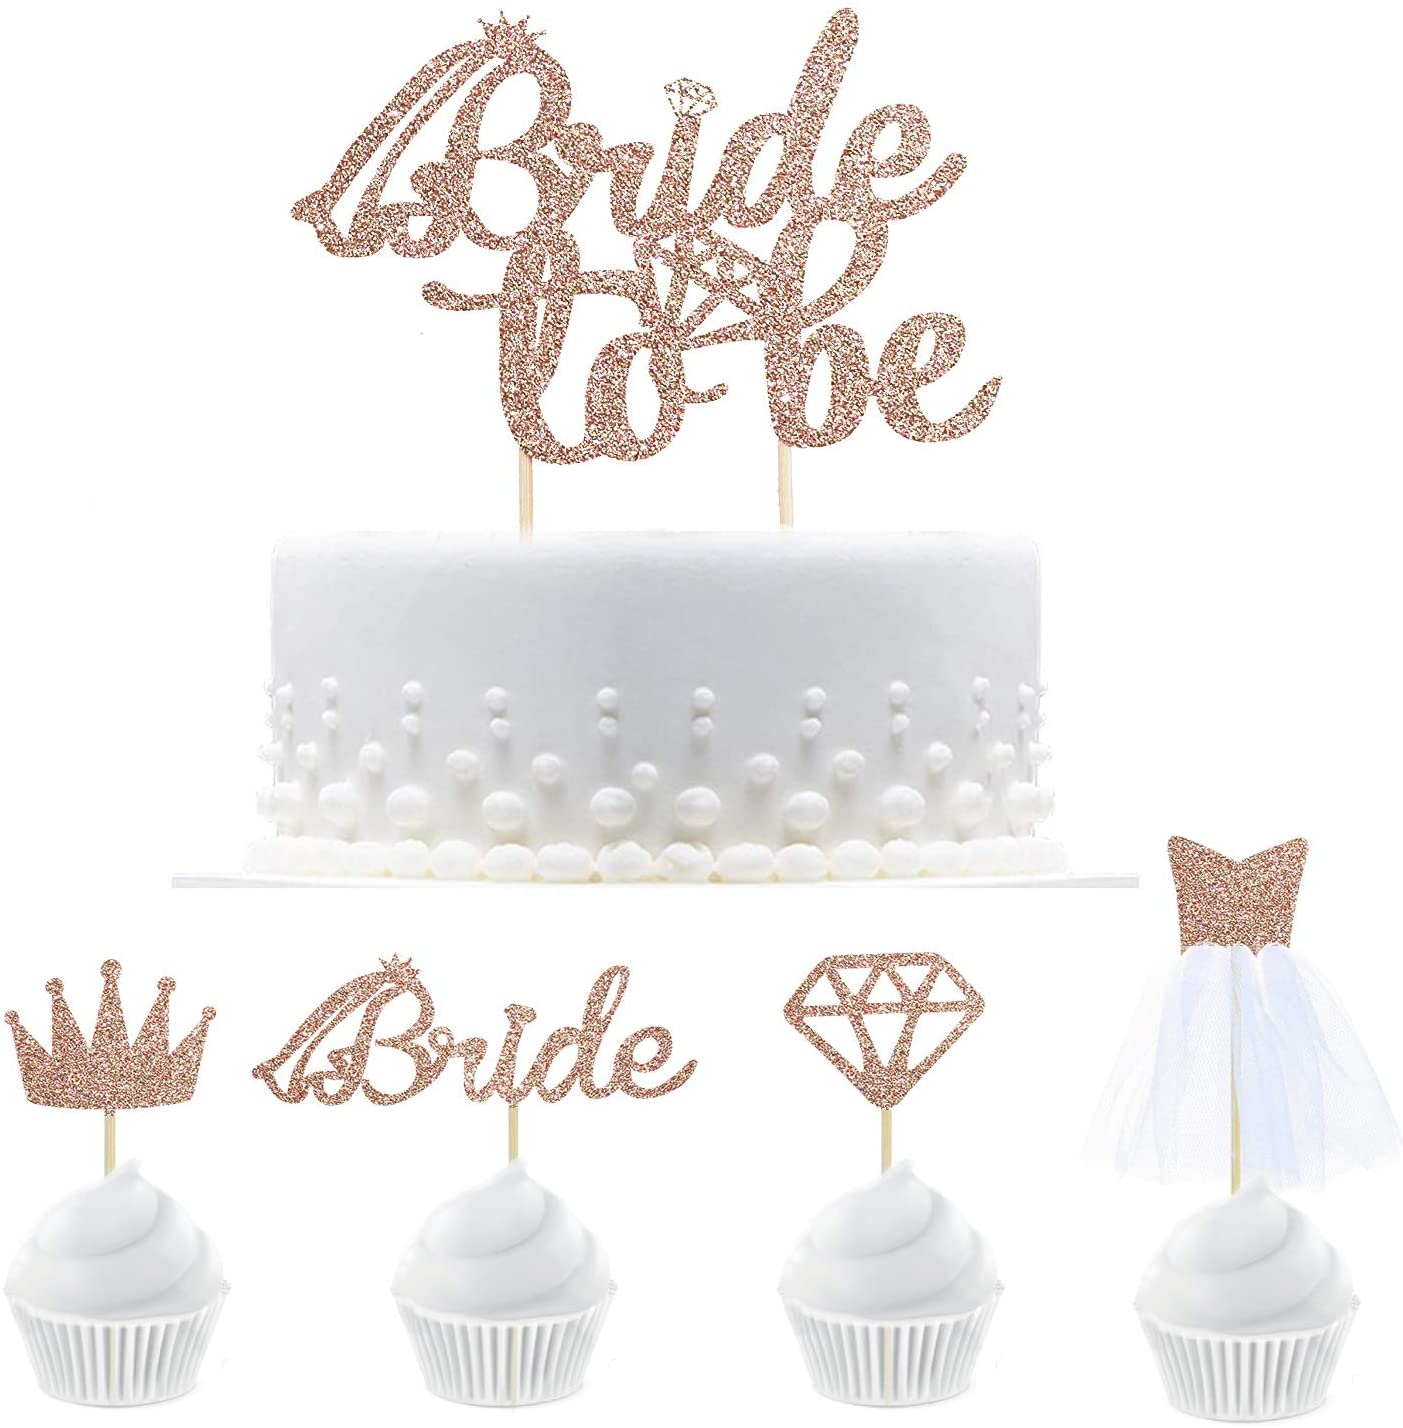 1Pc Bride To Be glitter Gold Cake Topper Cupcake Pick Hens Party Cake Decor RS